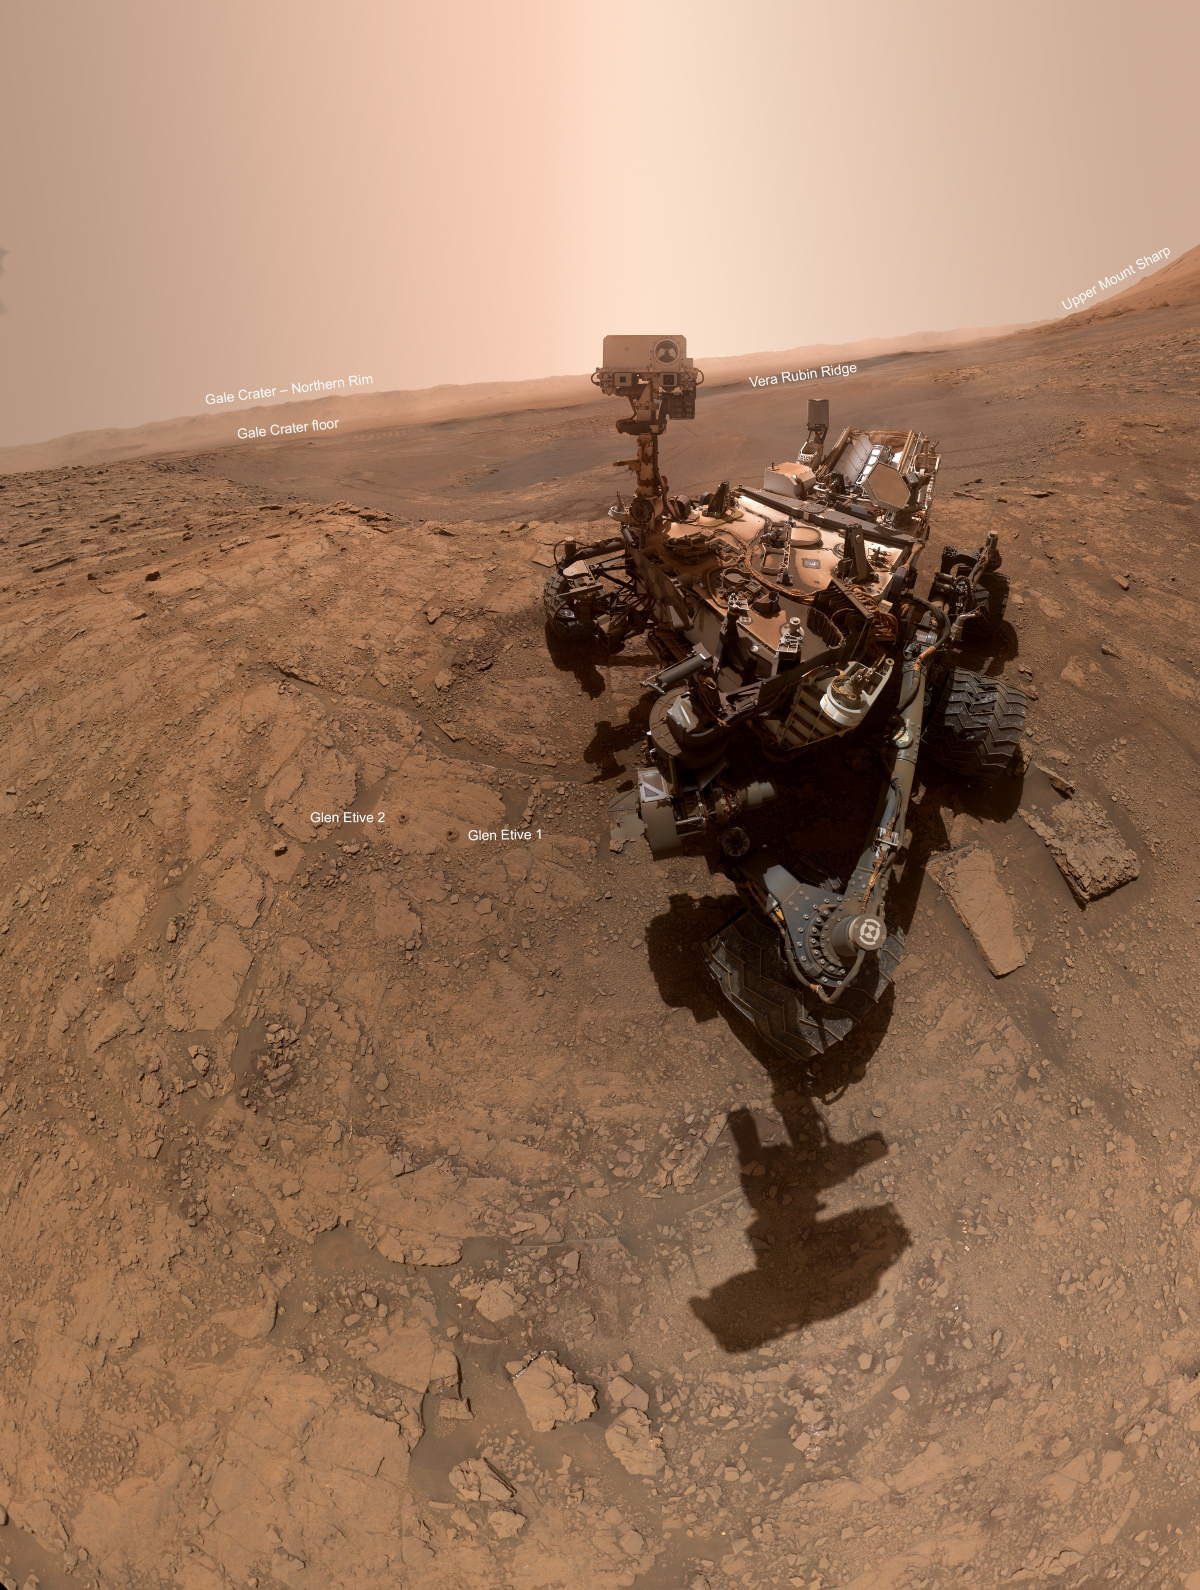 Curiosity Rover selfie (October 11, 2019) - annotated version